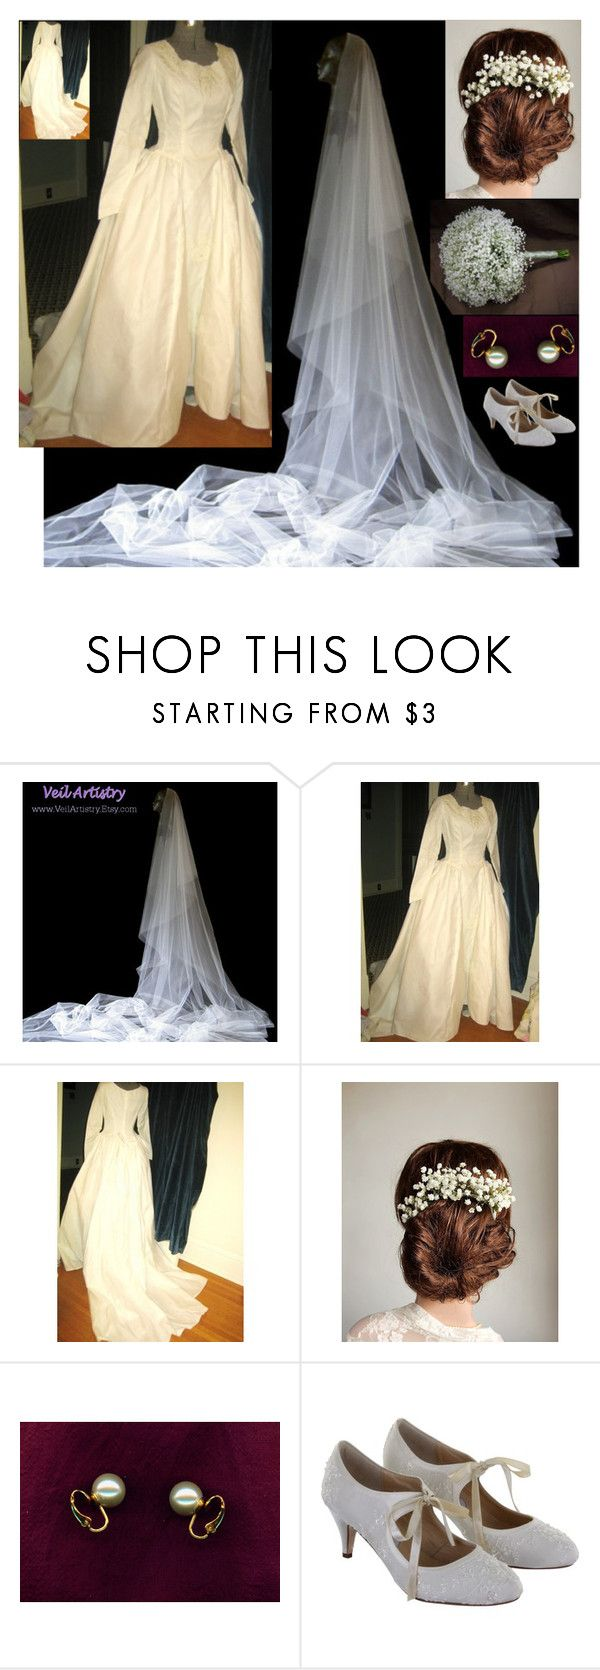 """""""Vintage Royal Wedding Dress"""" by dezaval ❤ liked on Polyvore featuring Rainbow Club and vintage"""